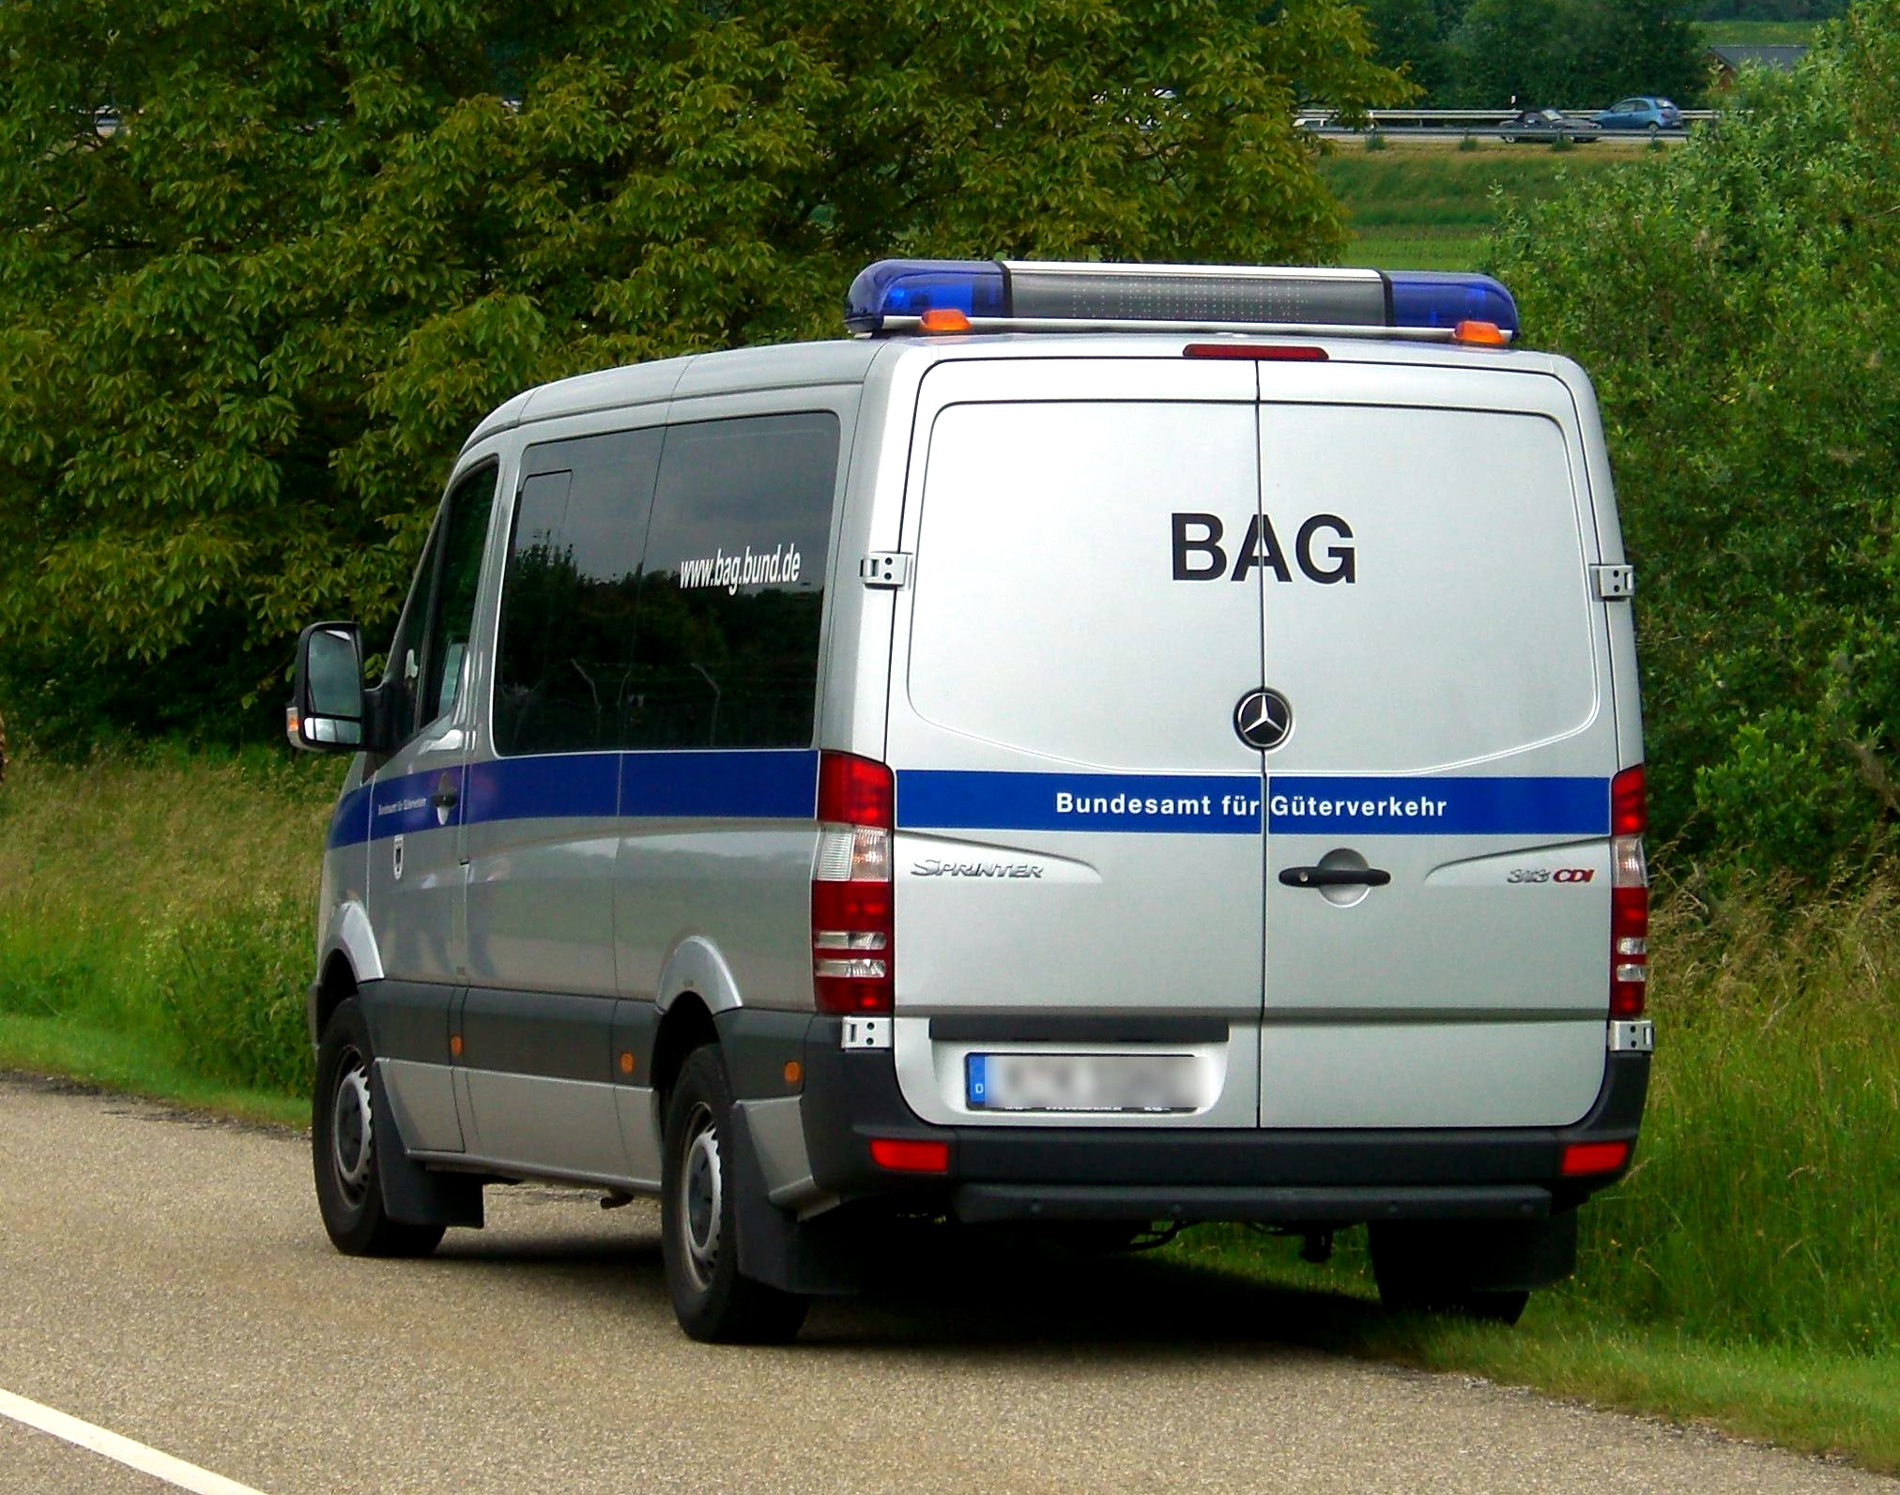 BAG records 41 cases of illegal cabotage in a single day